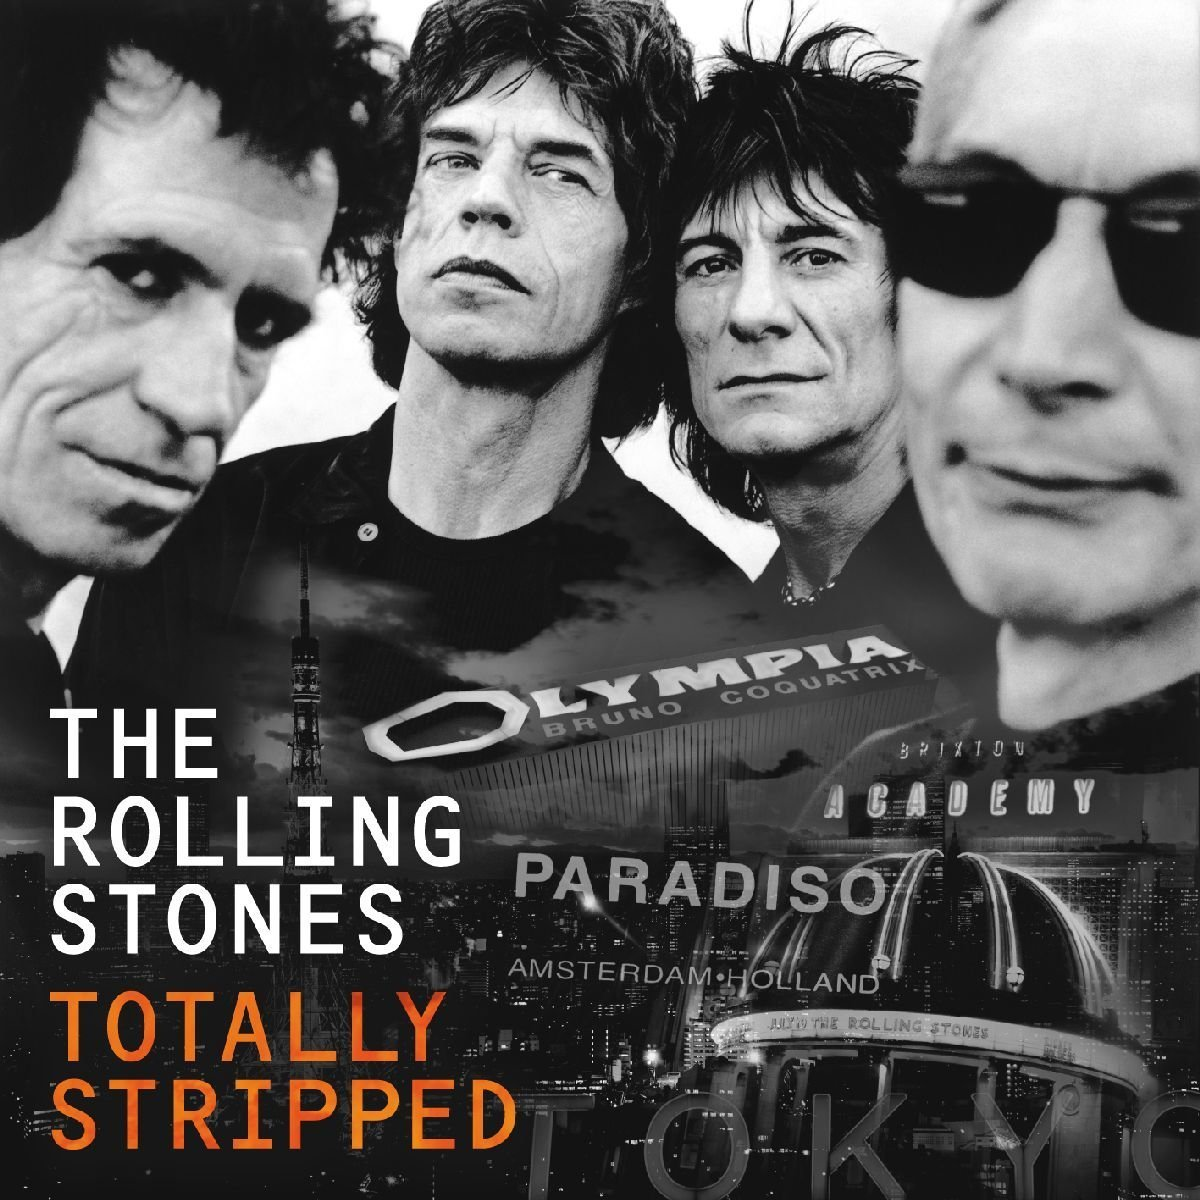 THE ROLLING STONES - TOTALLY STRIPPED (CD+DVD) (CD)